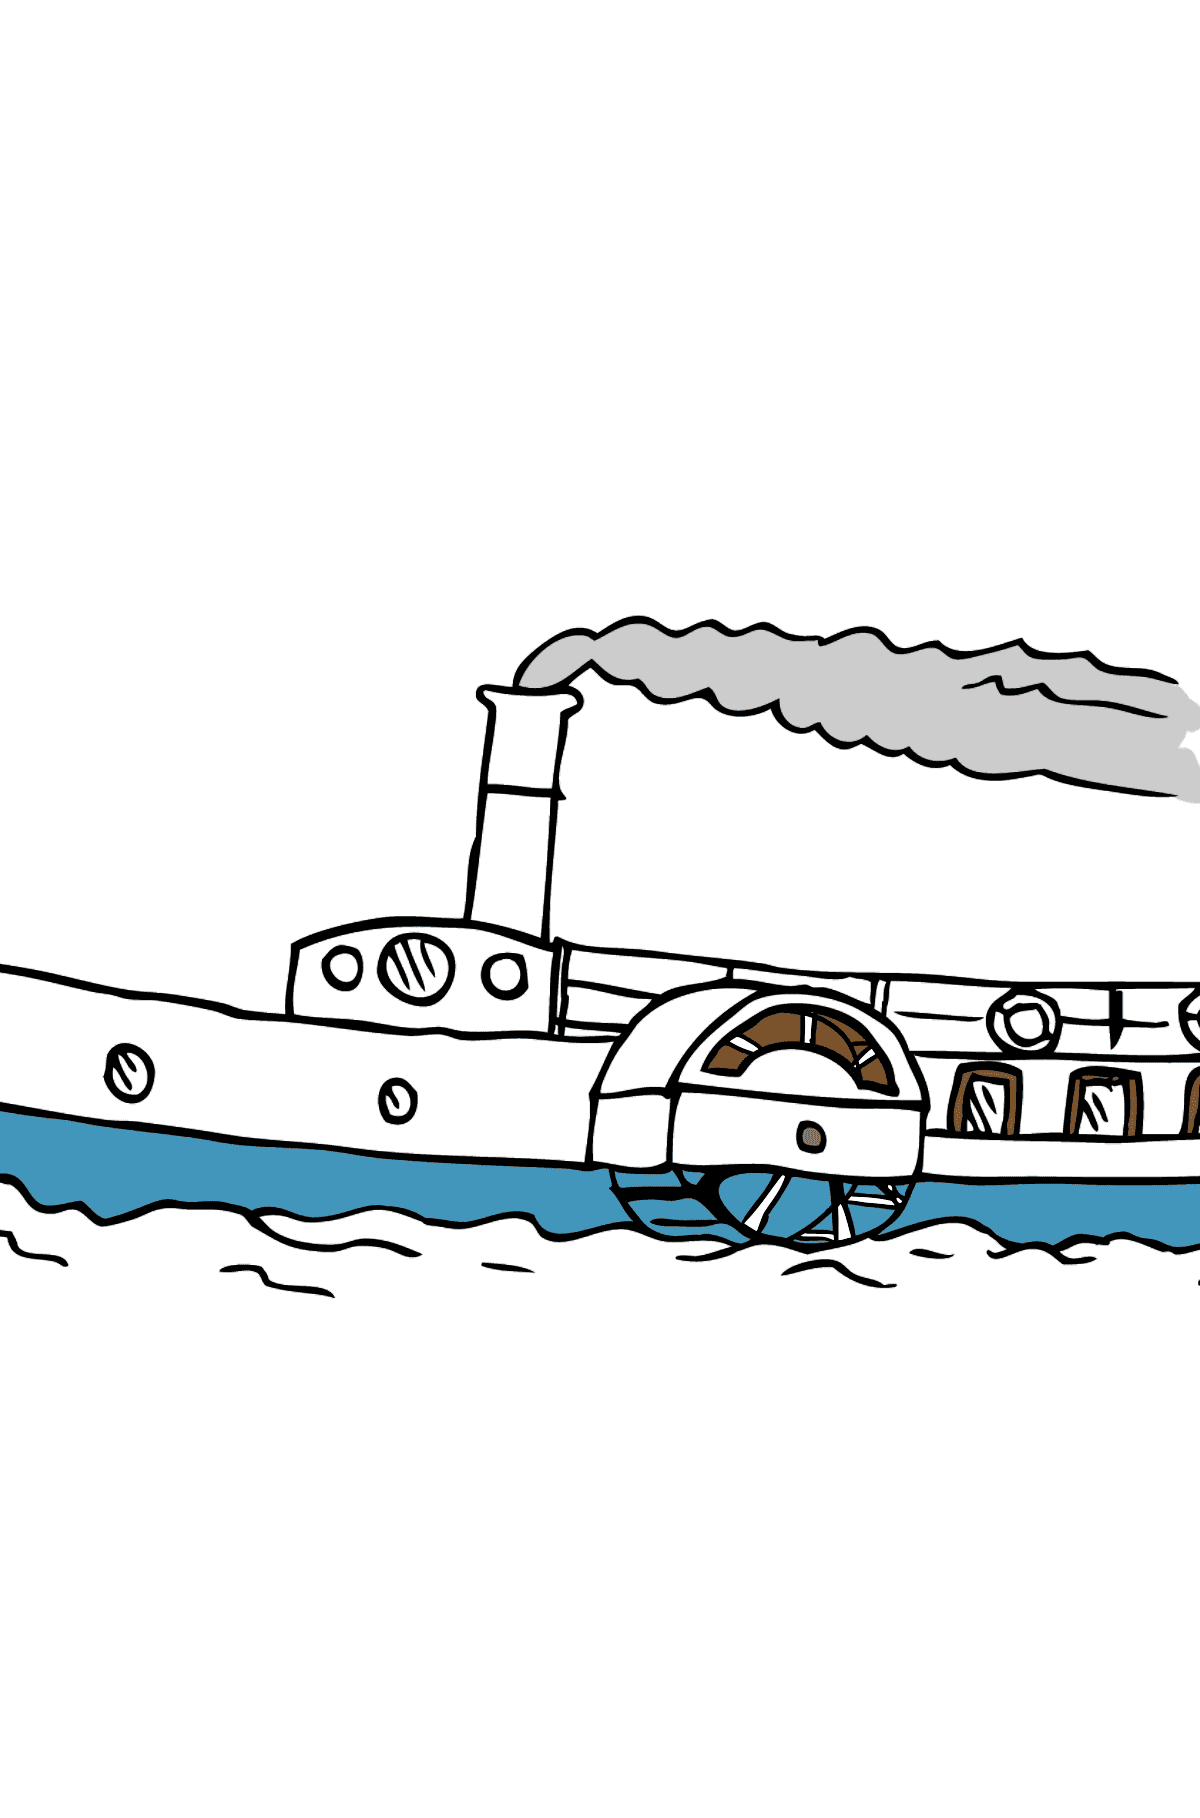 Coloring Page - A Ship with a Paddle Wheel - Coloring Pages for Kids